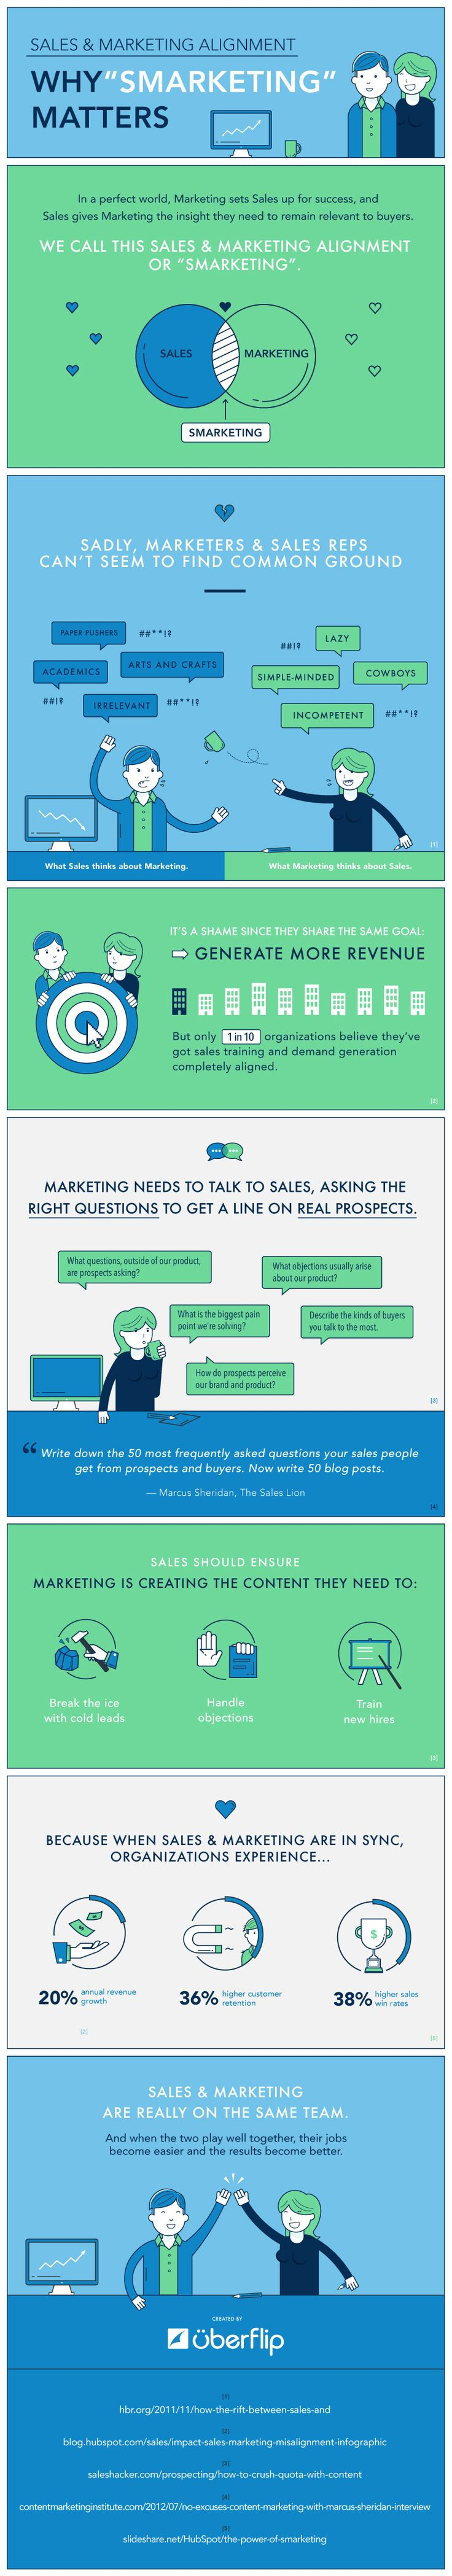 Why #SMarketing Matters [#infographic]